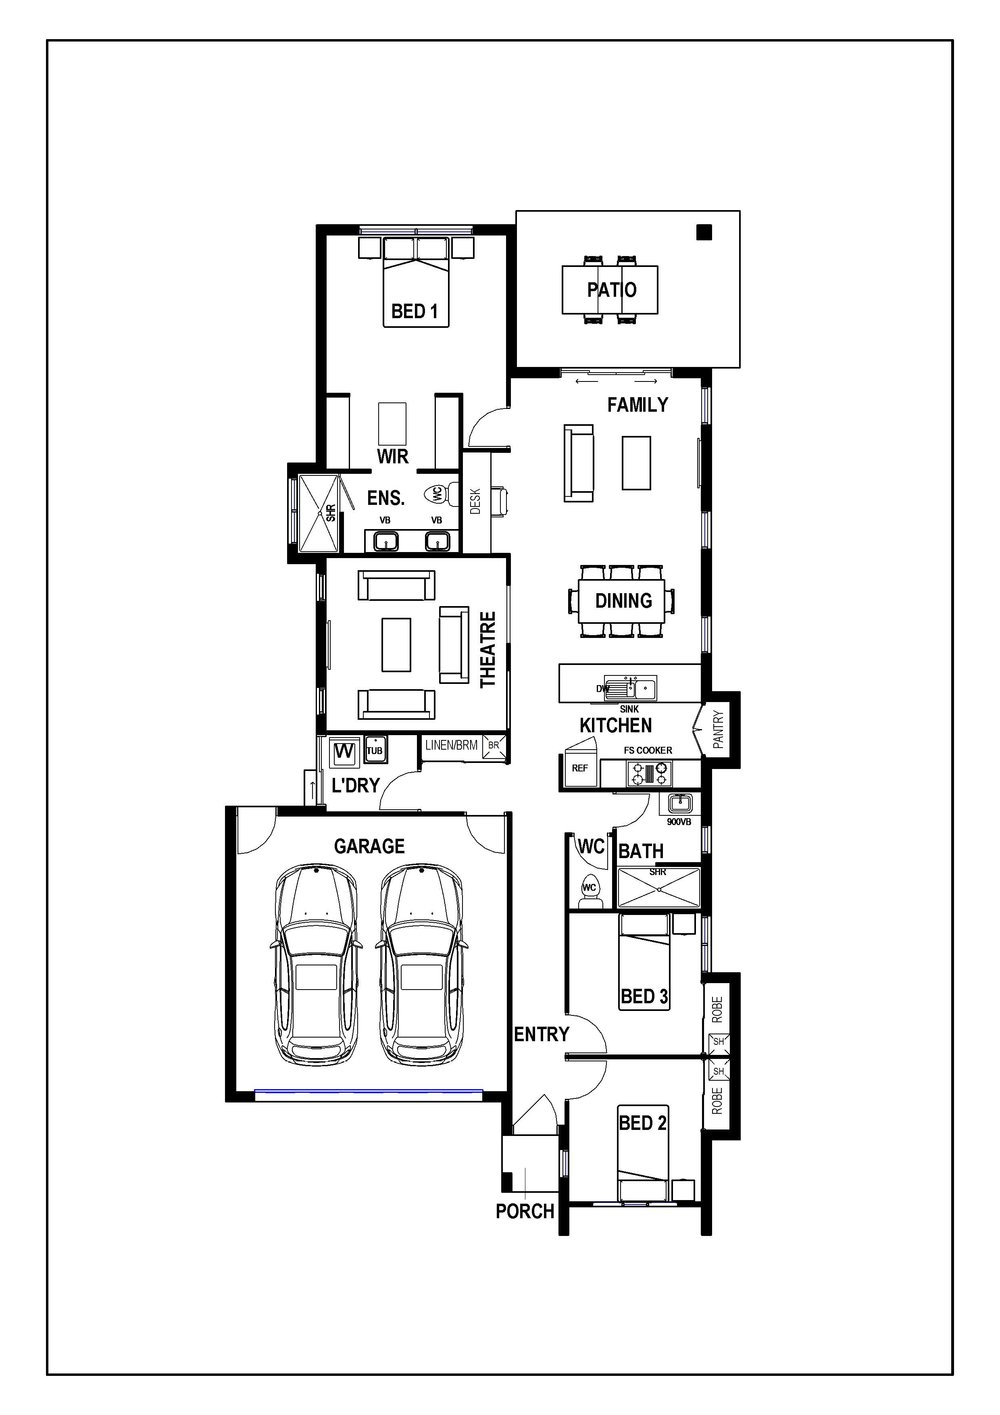 HOWEA A Floor Plan.jpg